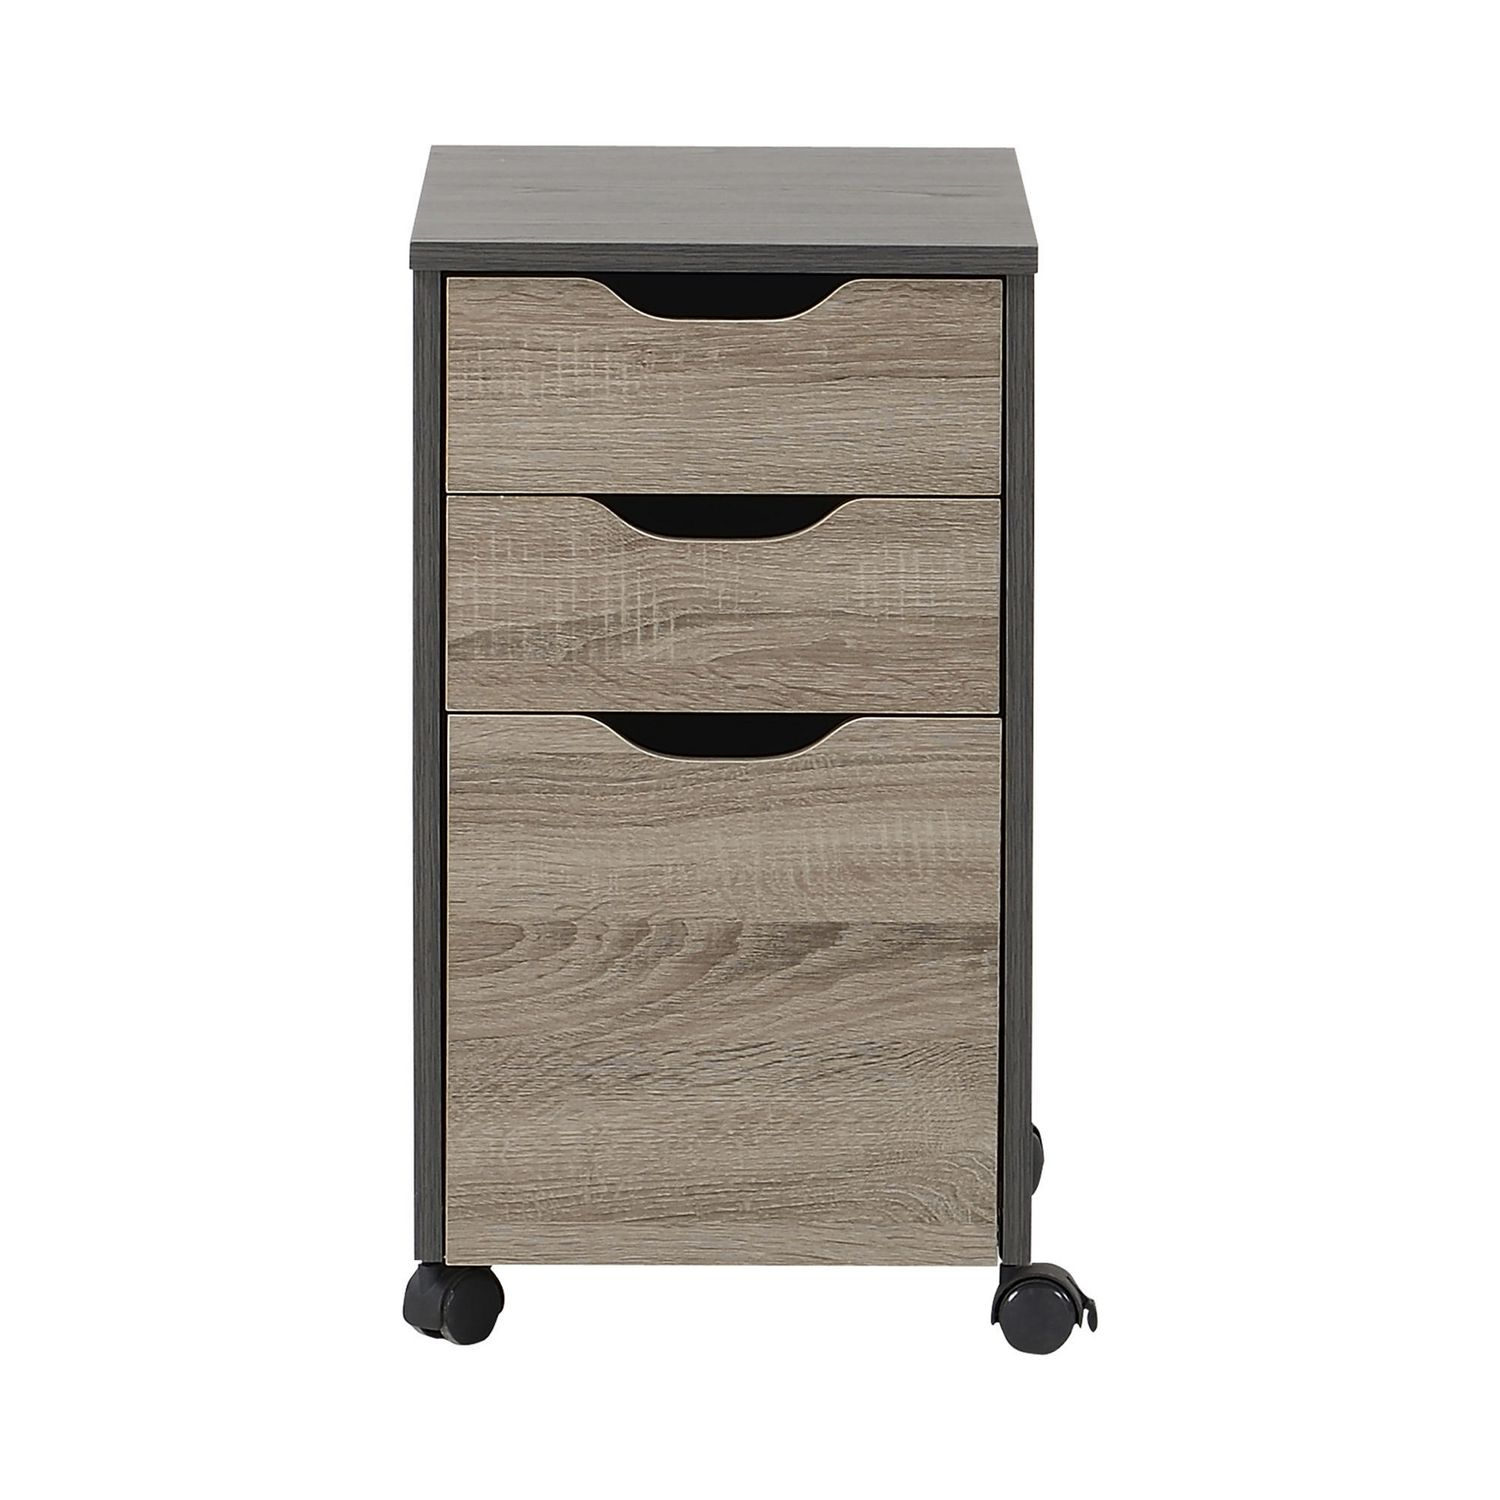 Office Furniture & Corner Cabinets for Home at Walmart.ca